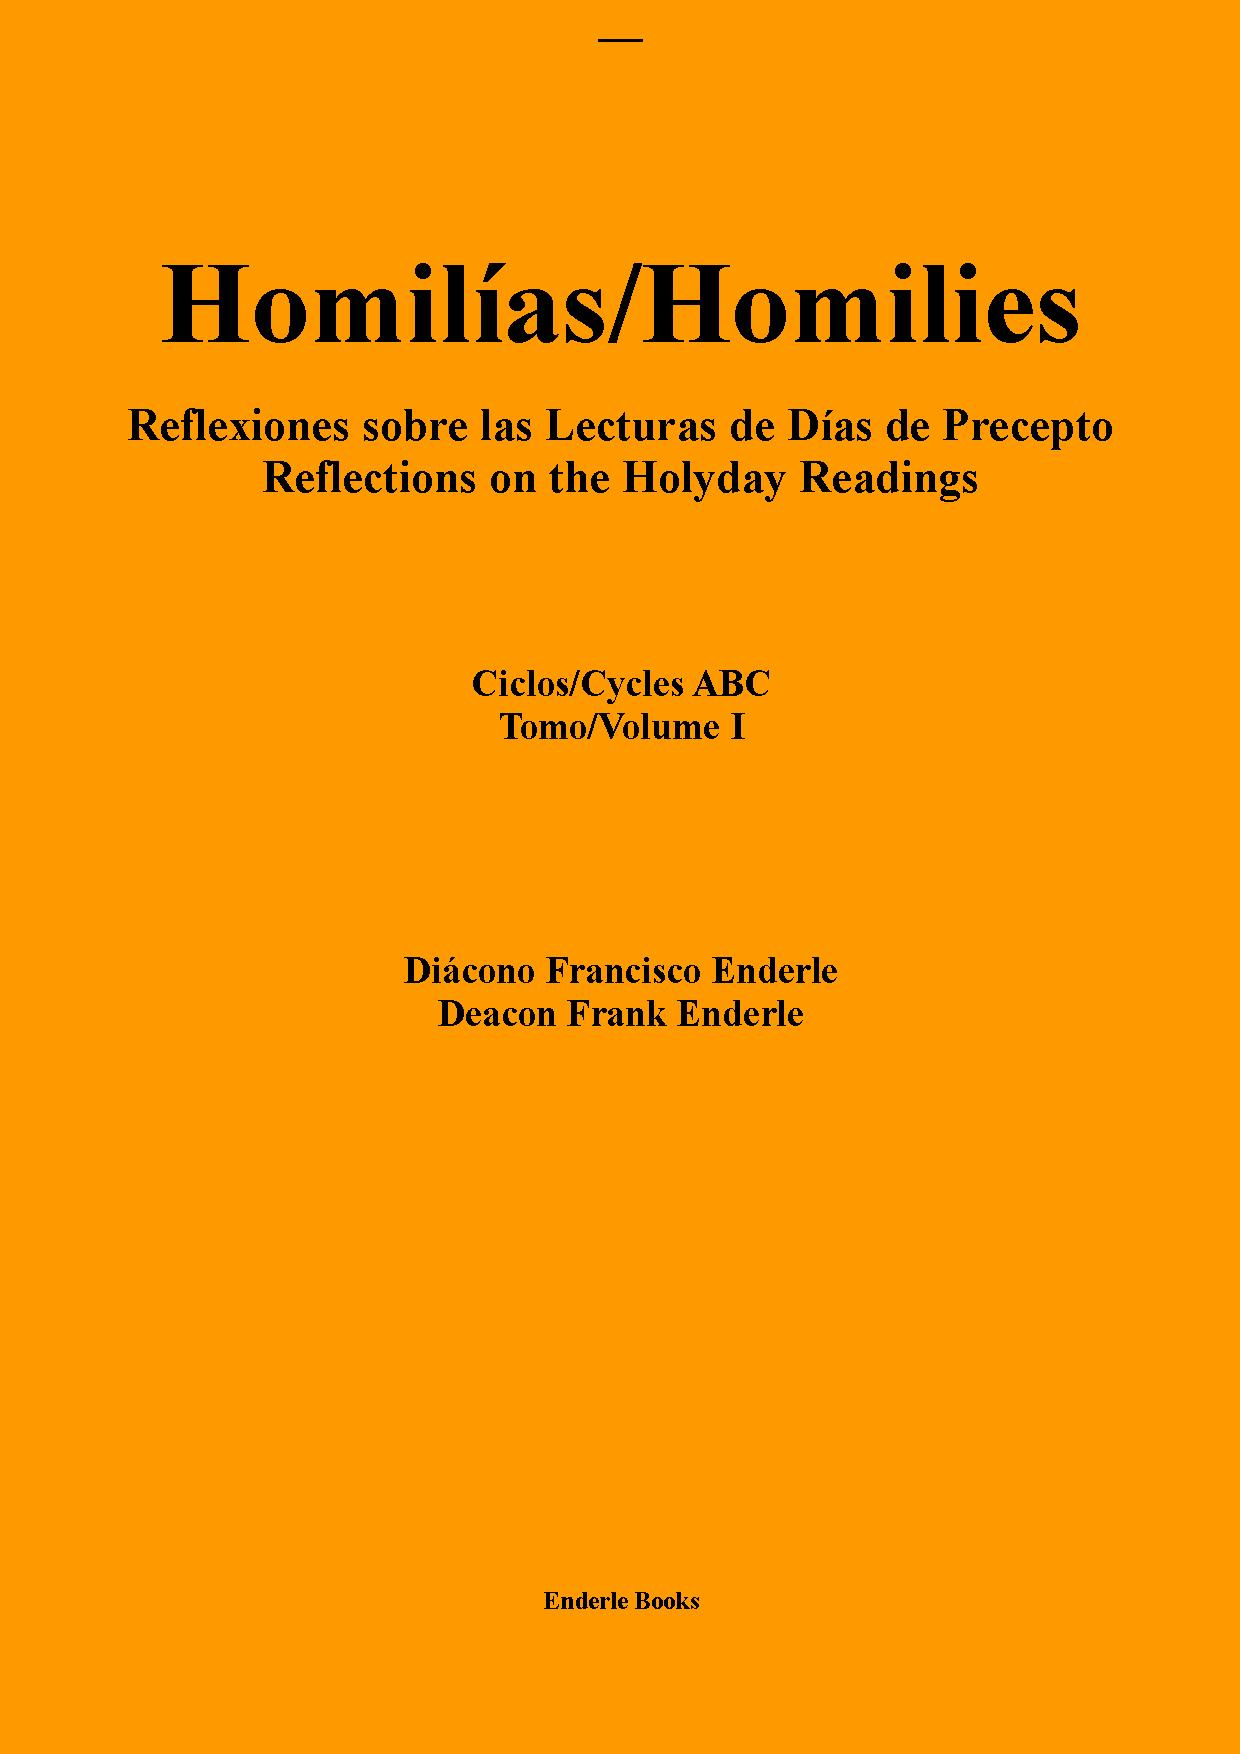 Holydays ABC Cover Image